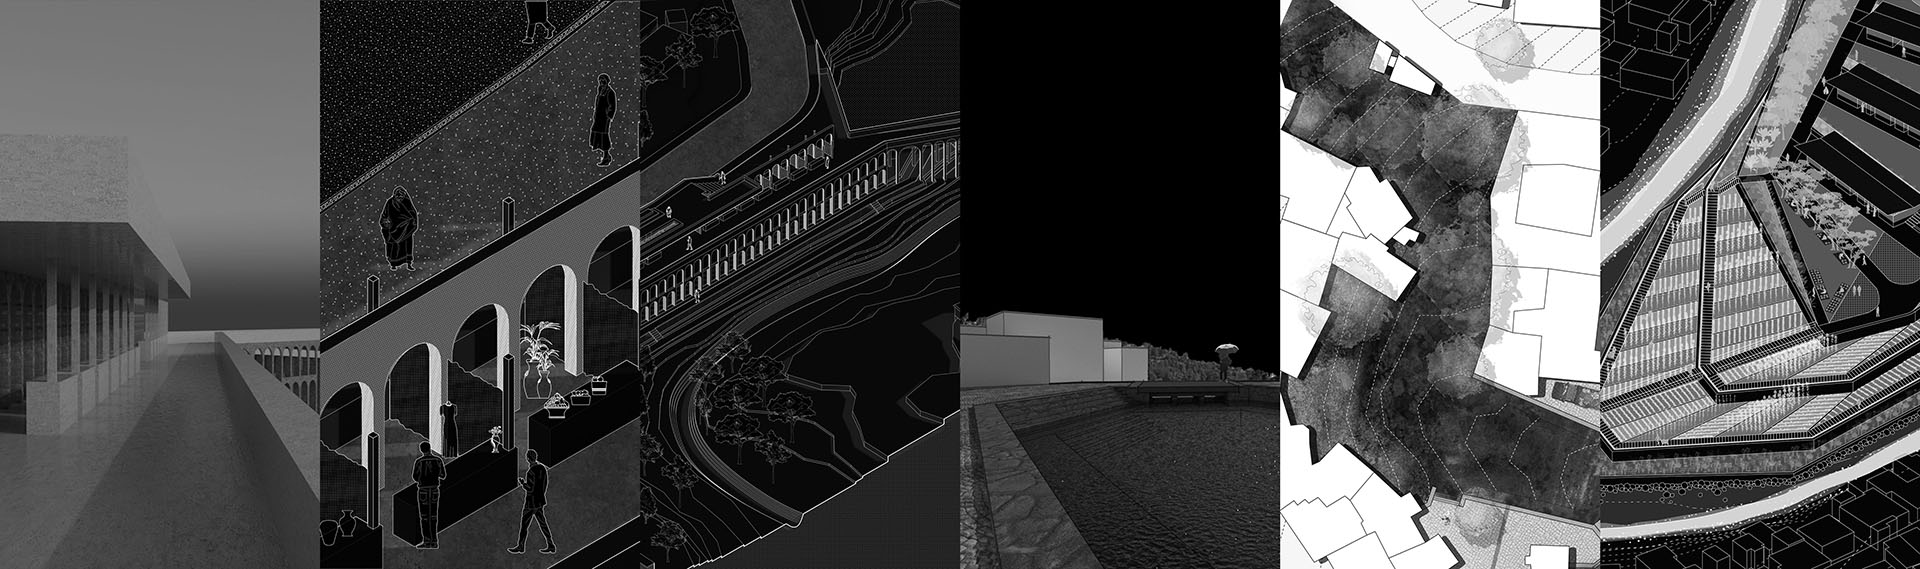 Black and white image collage, including renderings, plan drawings, and perspectives of modern architecture